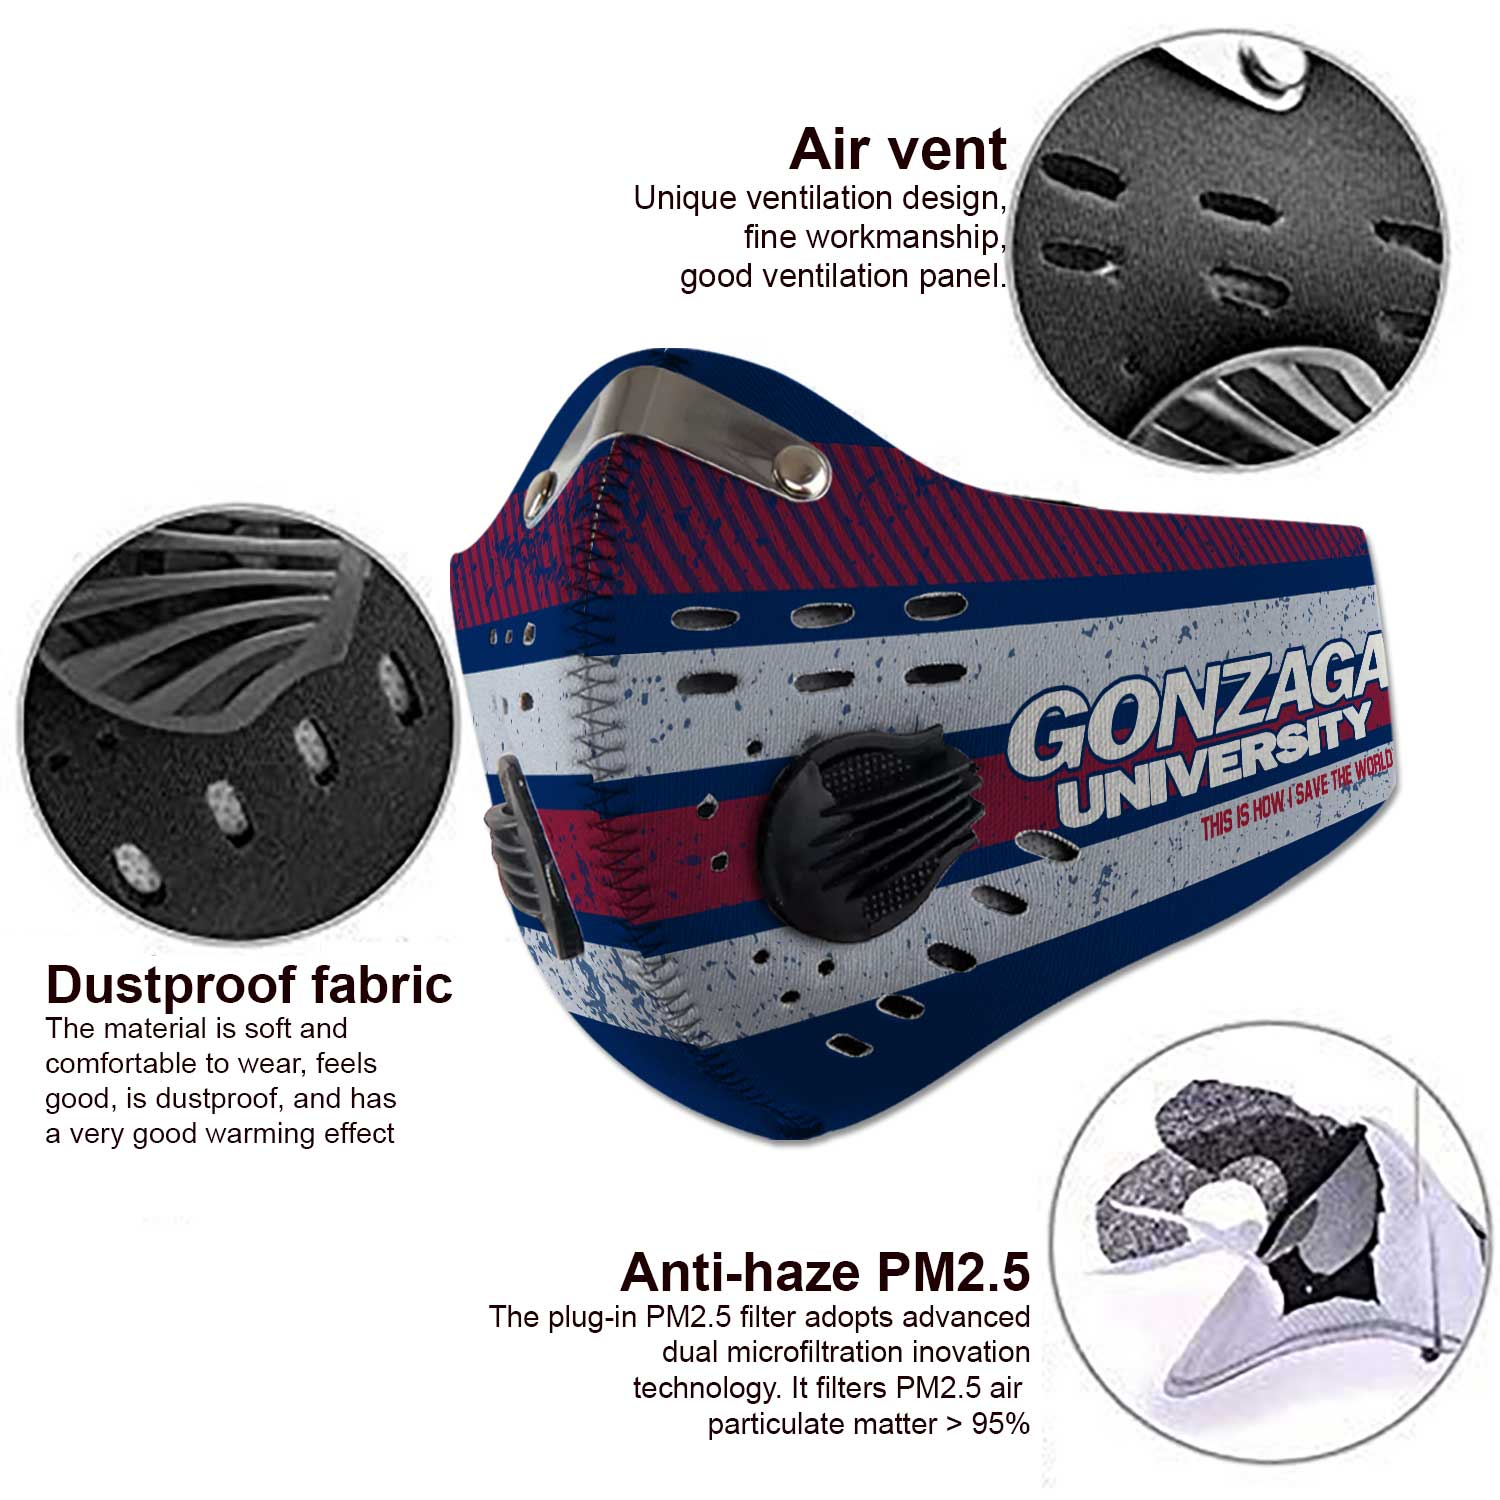 Gonzaga bulldogs men's basketball this is how i save the world face mask 3